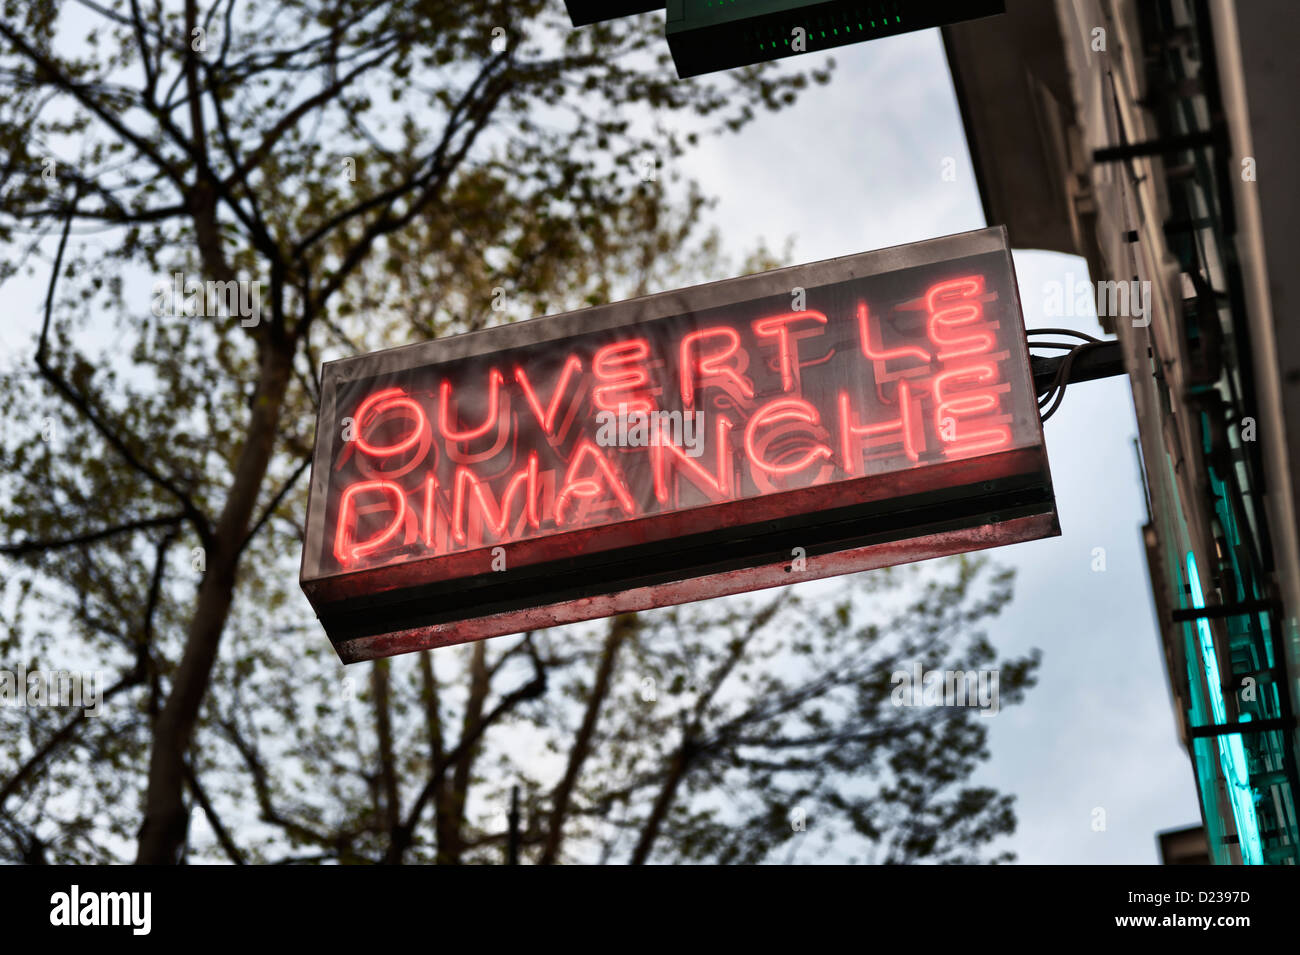 PARIS, FRANCE: Ouvert le dimanche (open on Sundays) - shop sign - Stock Image